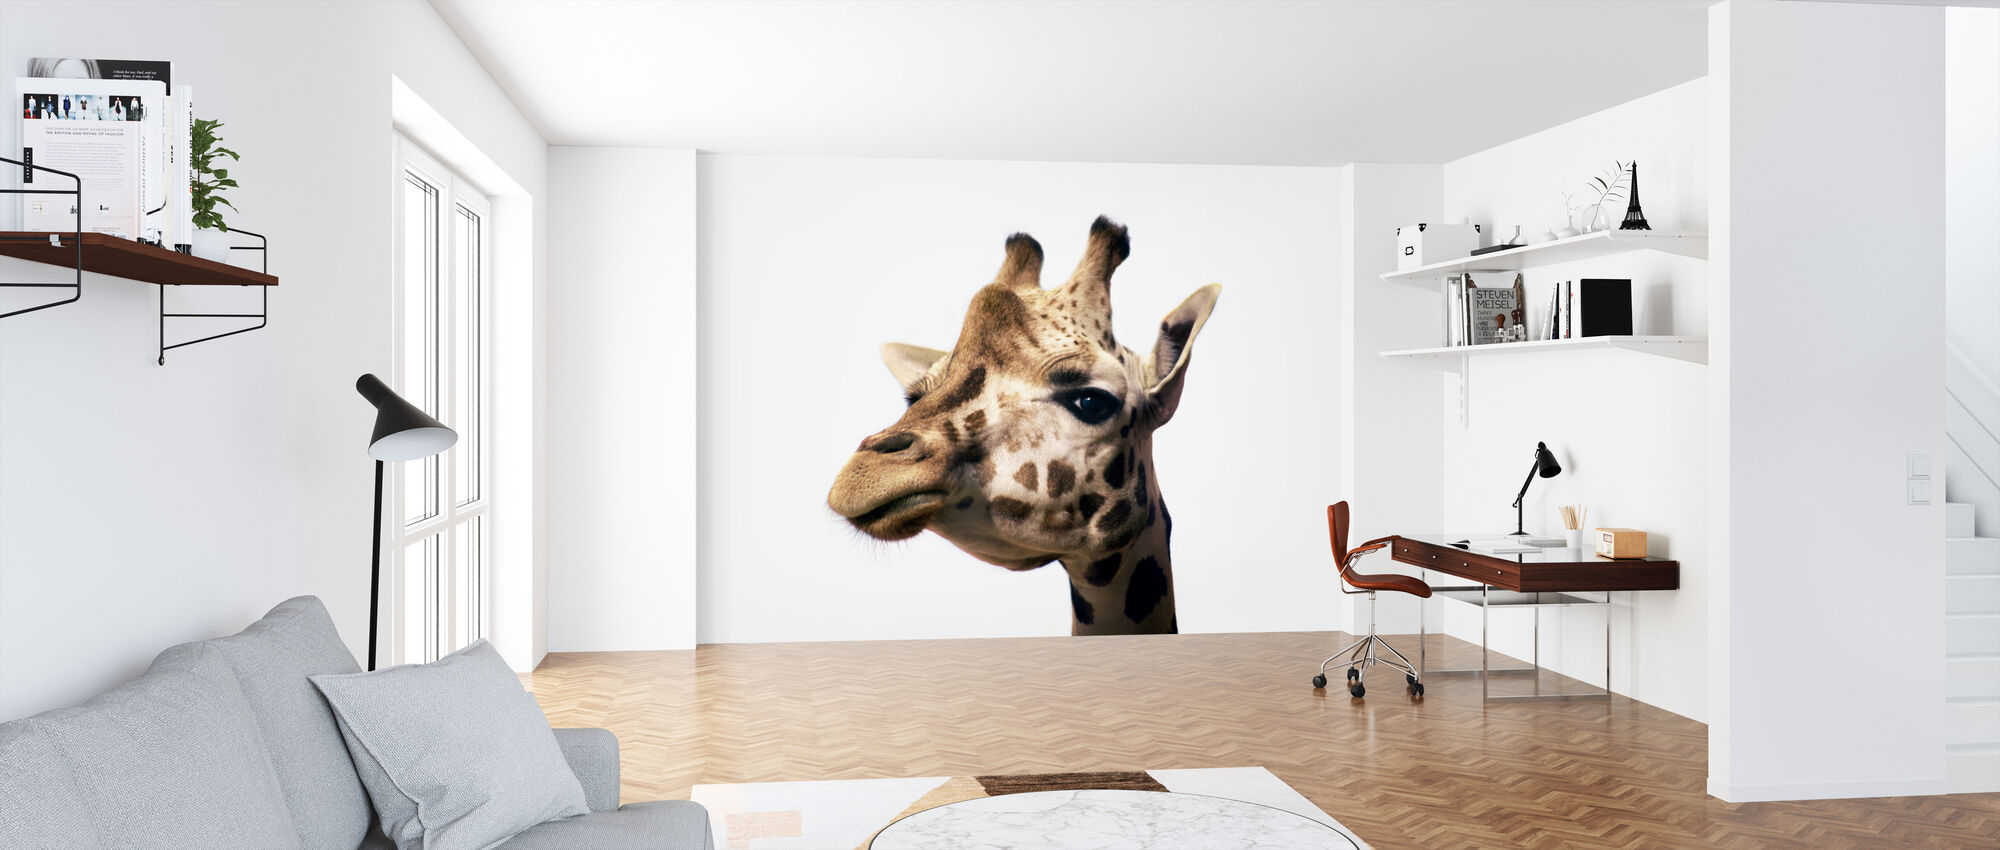 Portrait of a Giraffe - Wallpaper - Office